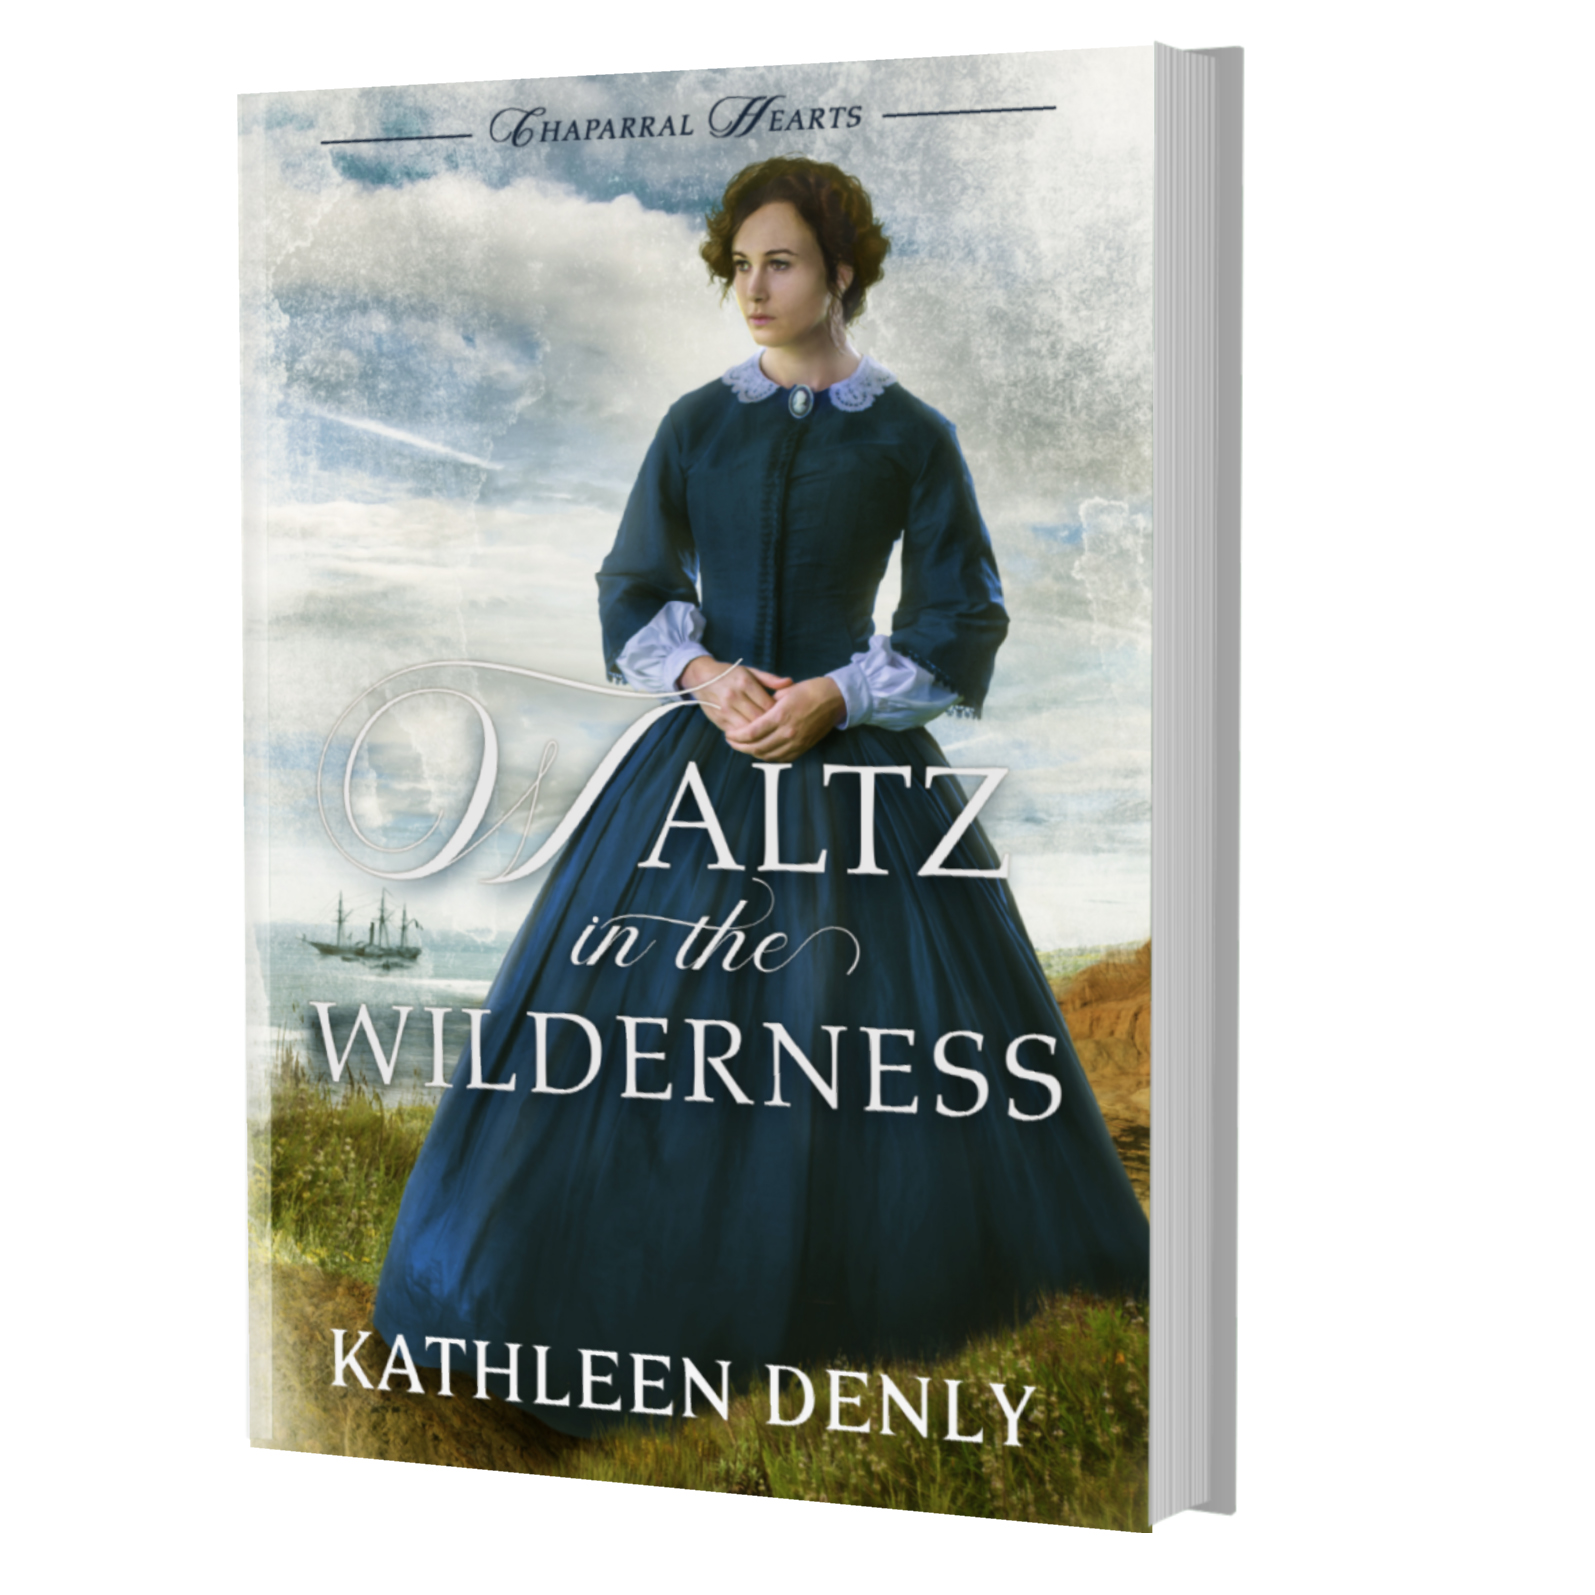 Waltz in the Wilderness- Kathleen Denly